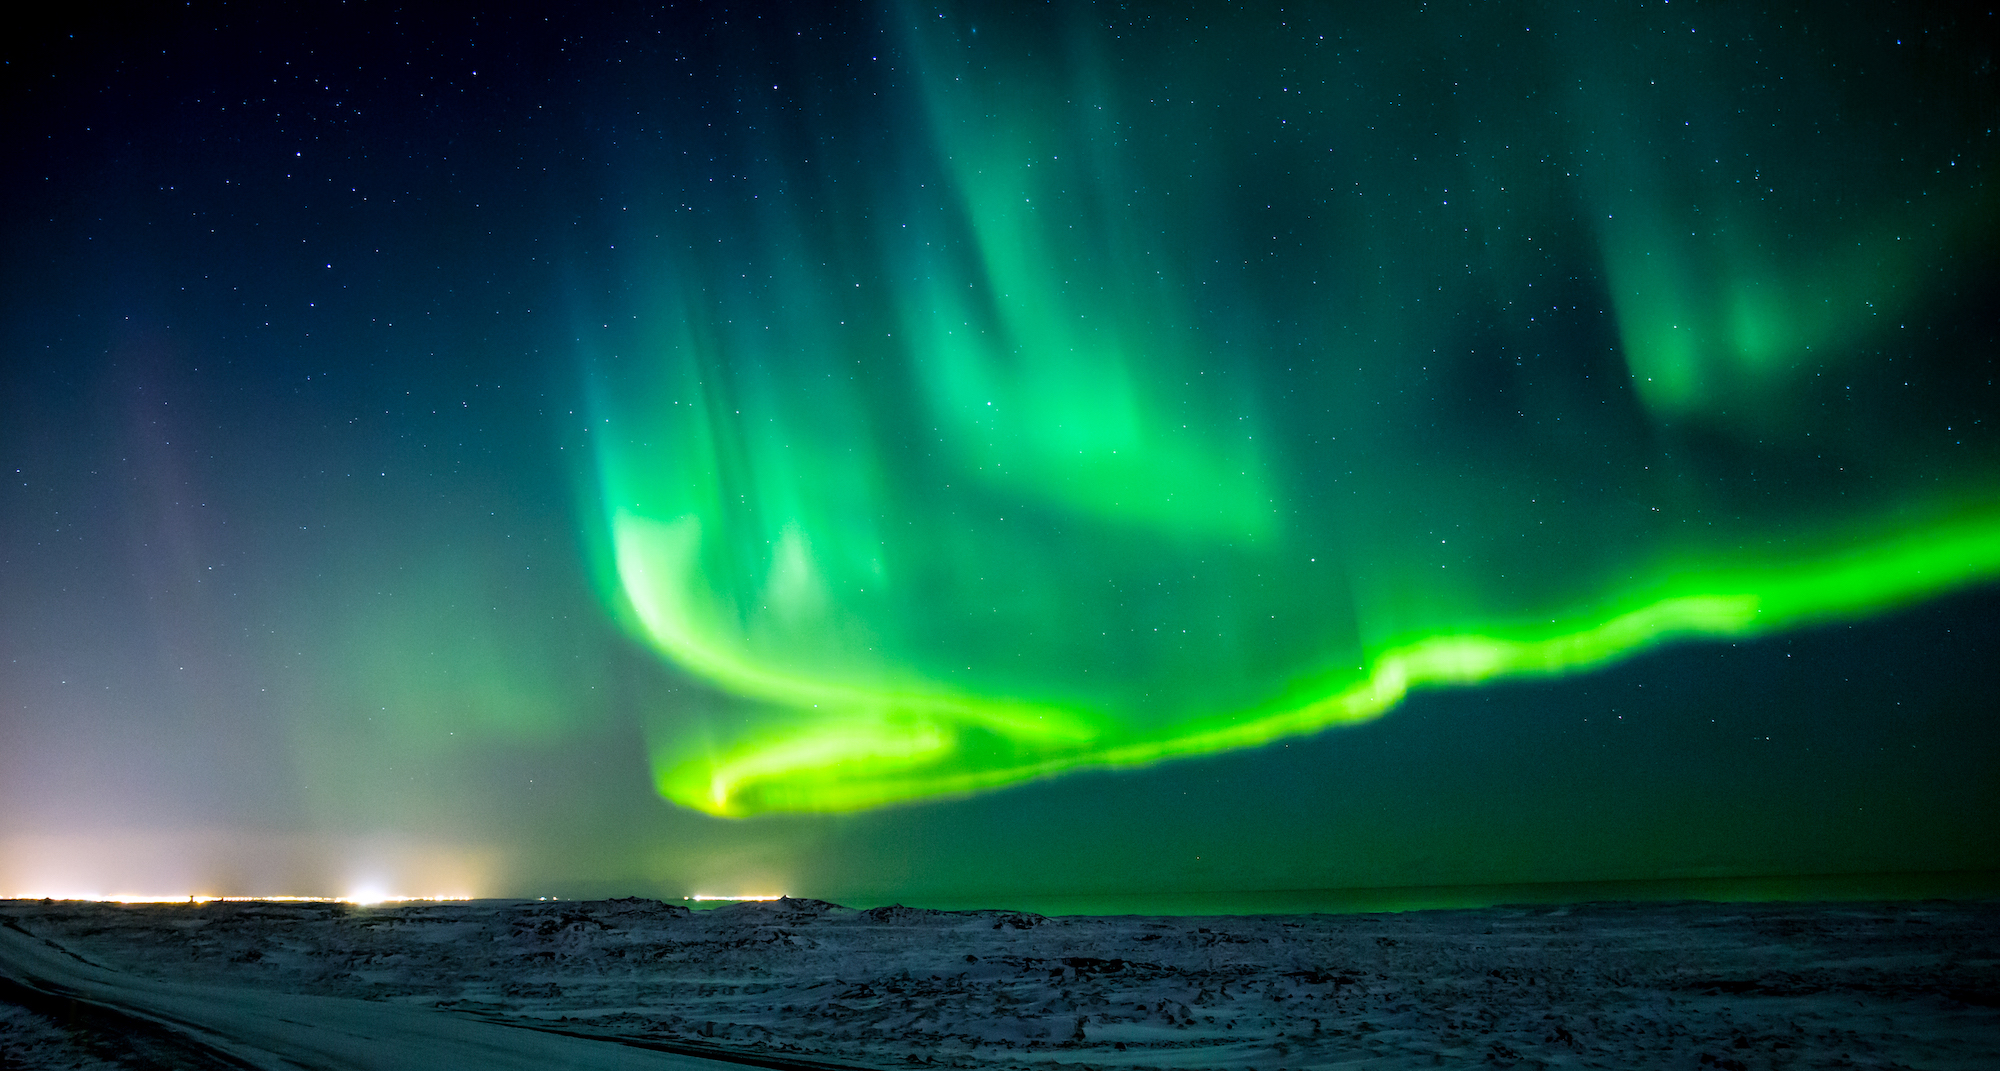 Composition of the Northern Lights over Iceland with a low horizon